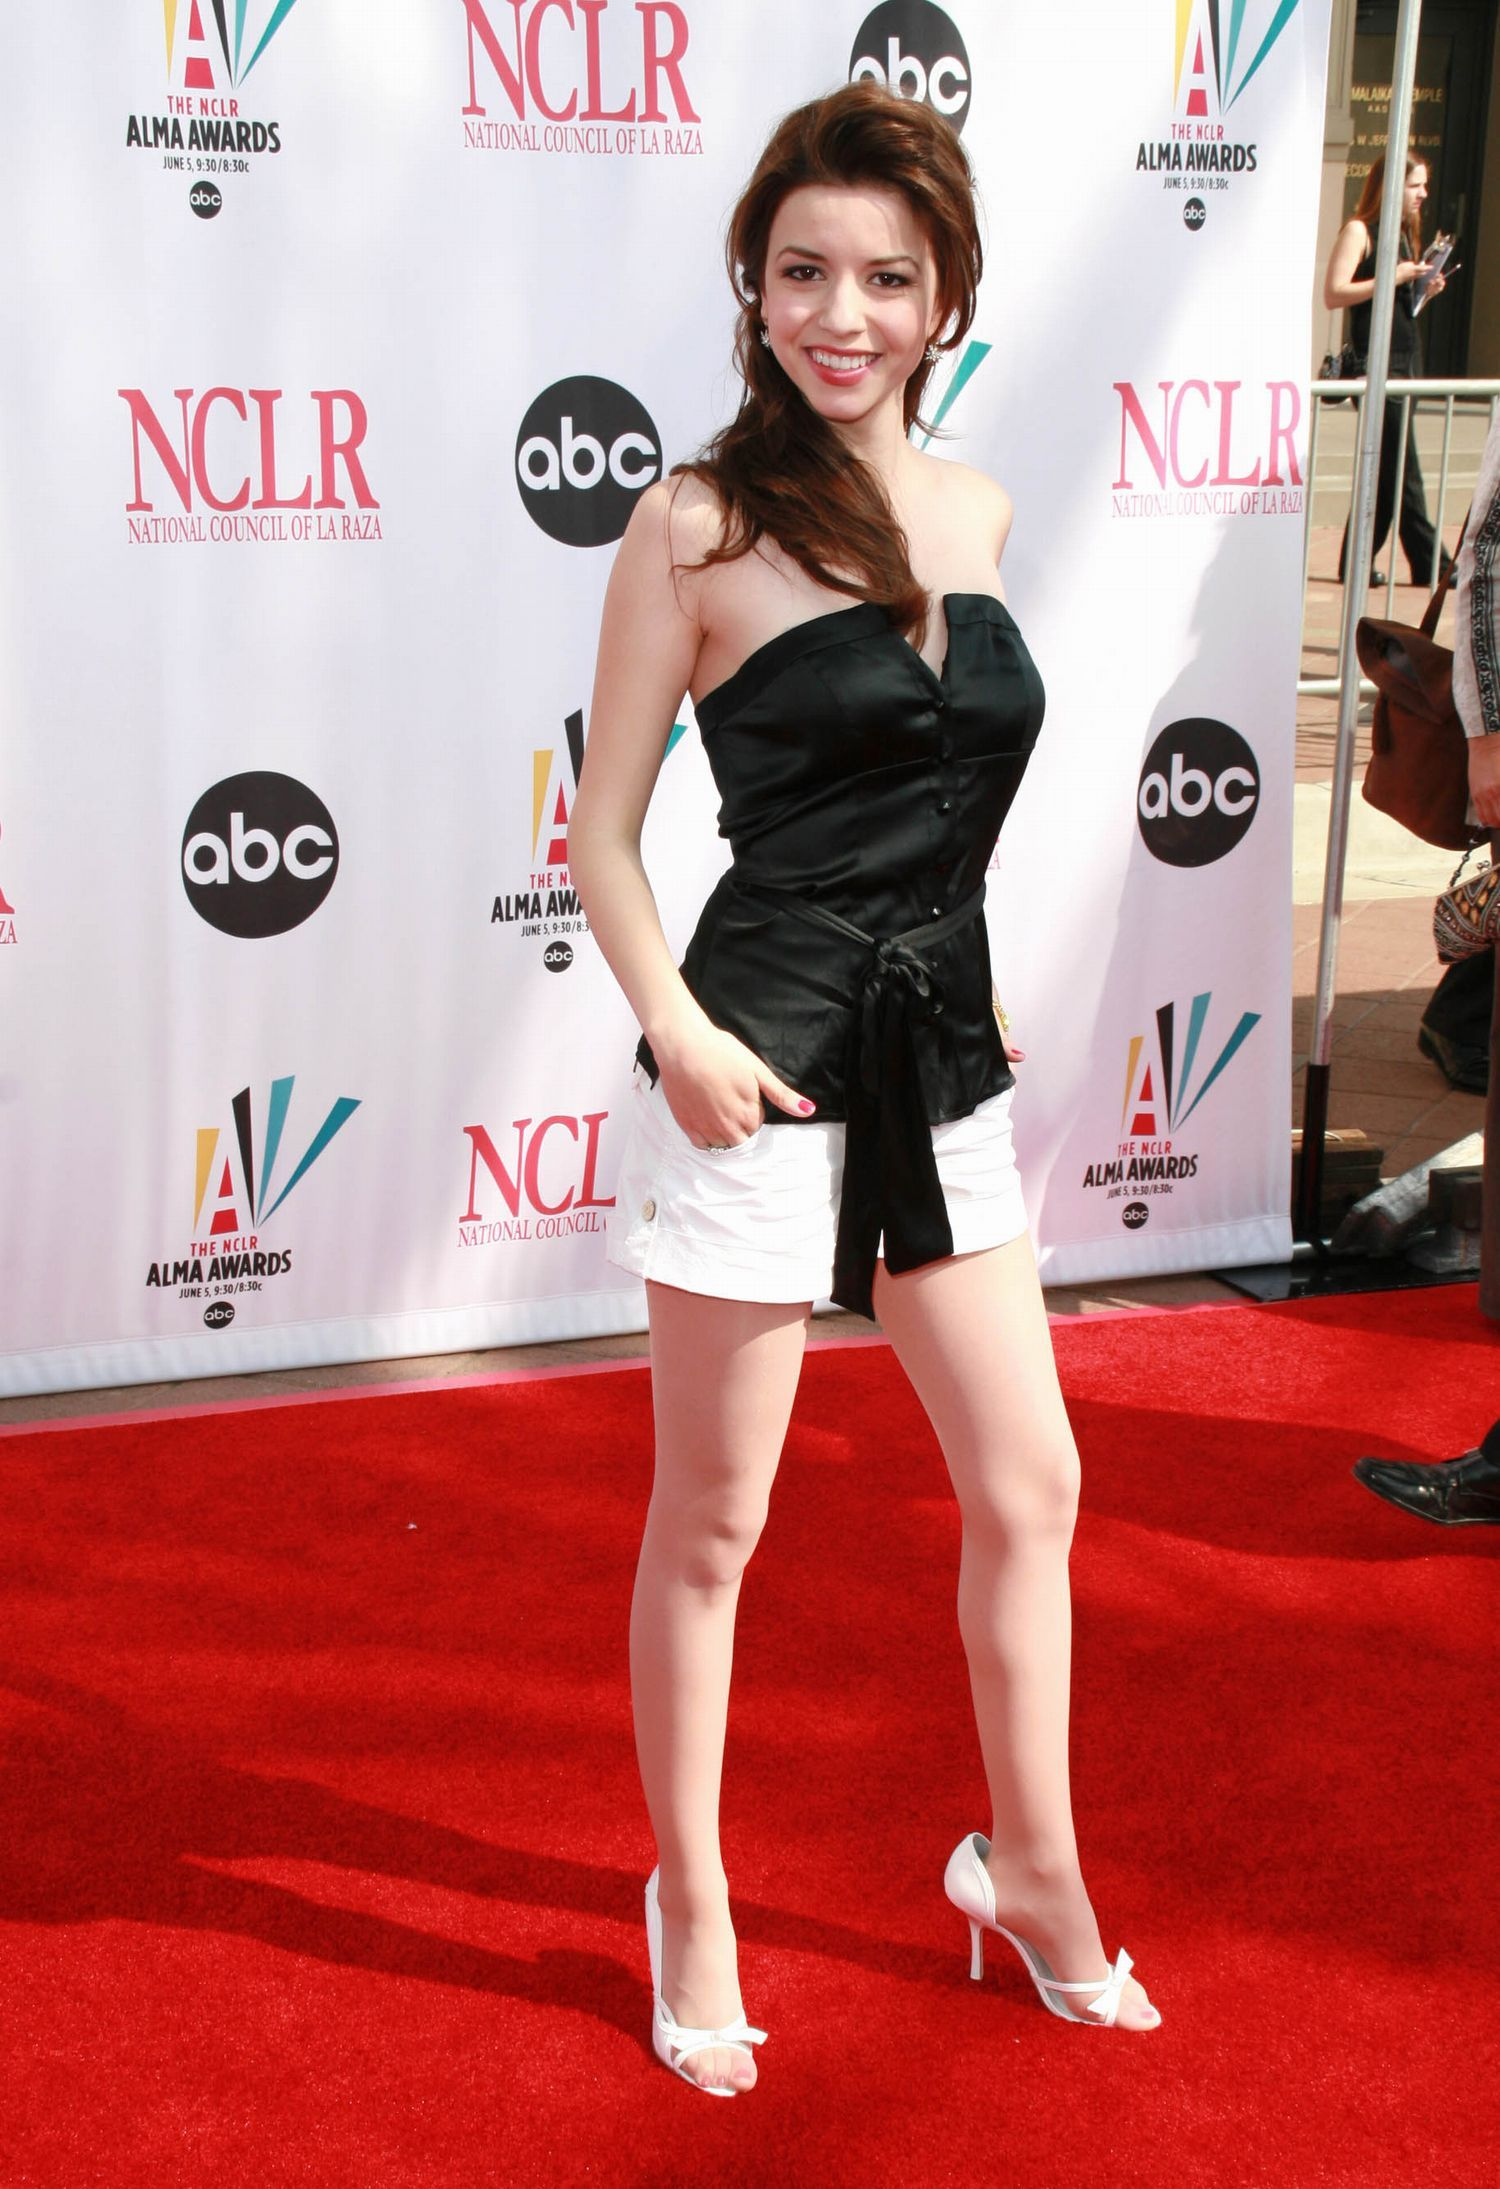 Masiela Lusha in pantyhose - More pictures here: http://stockings-celebs